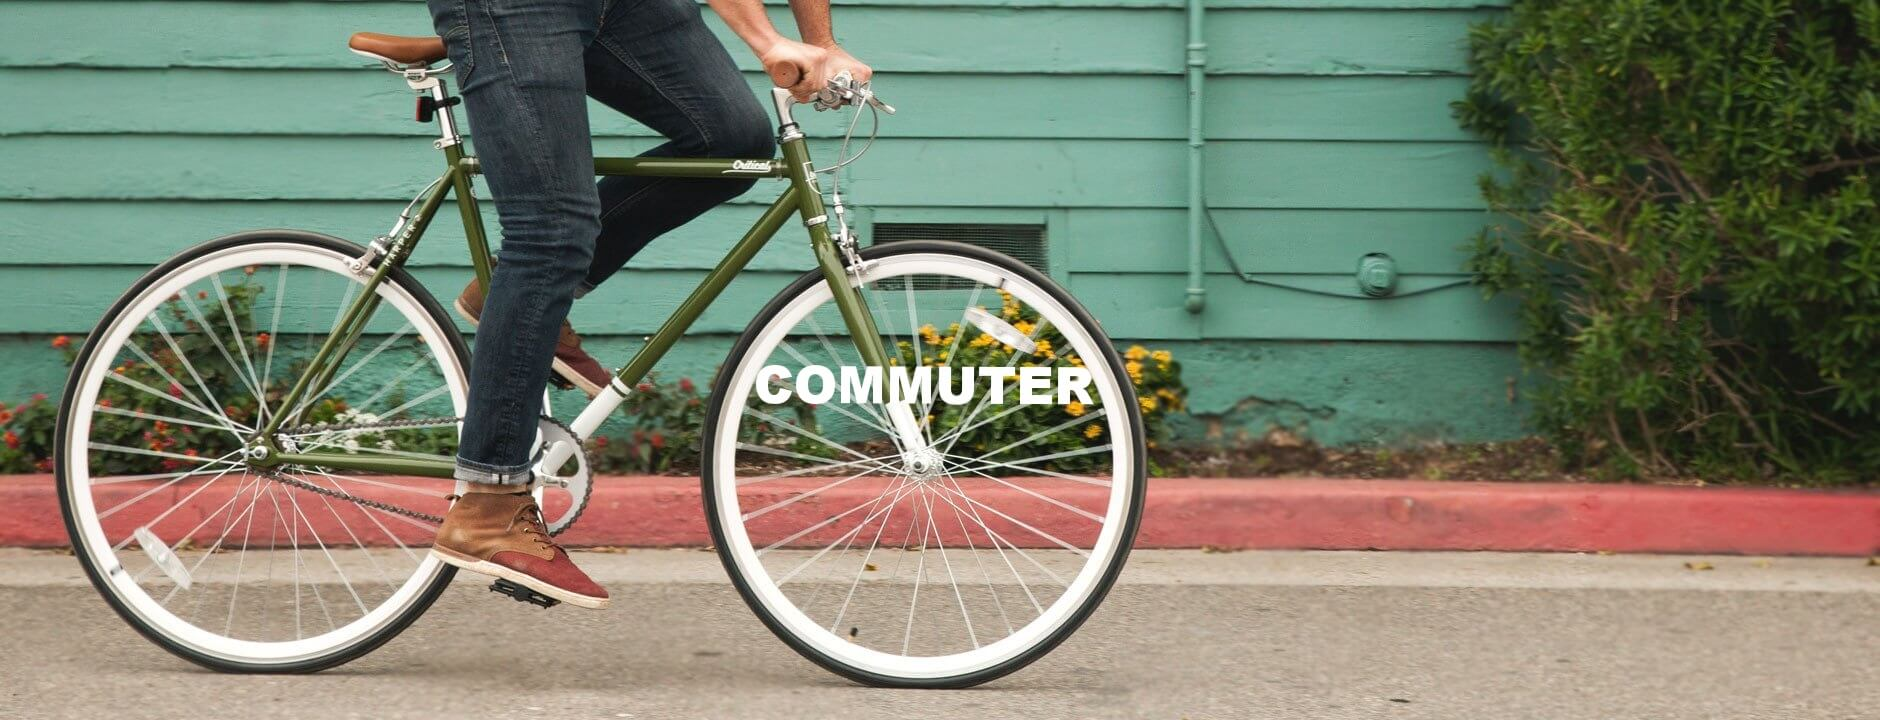 commuter_bike.jpg